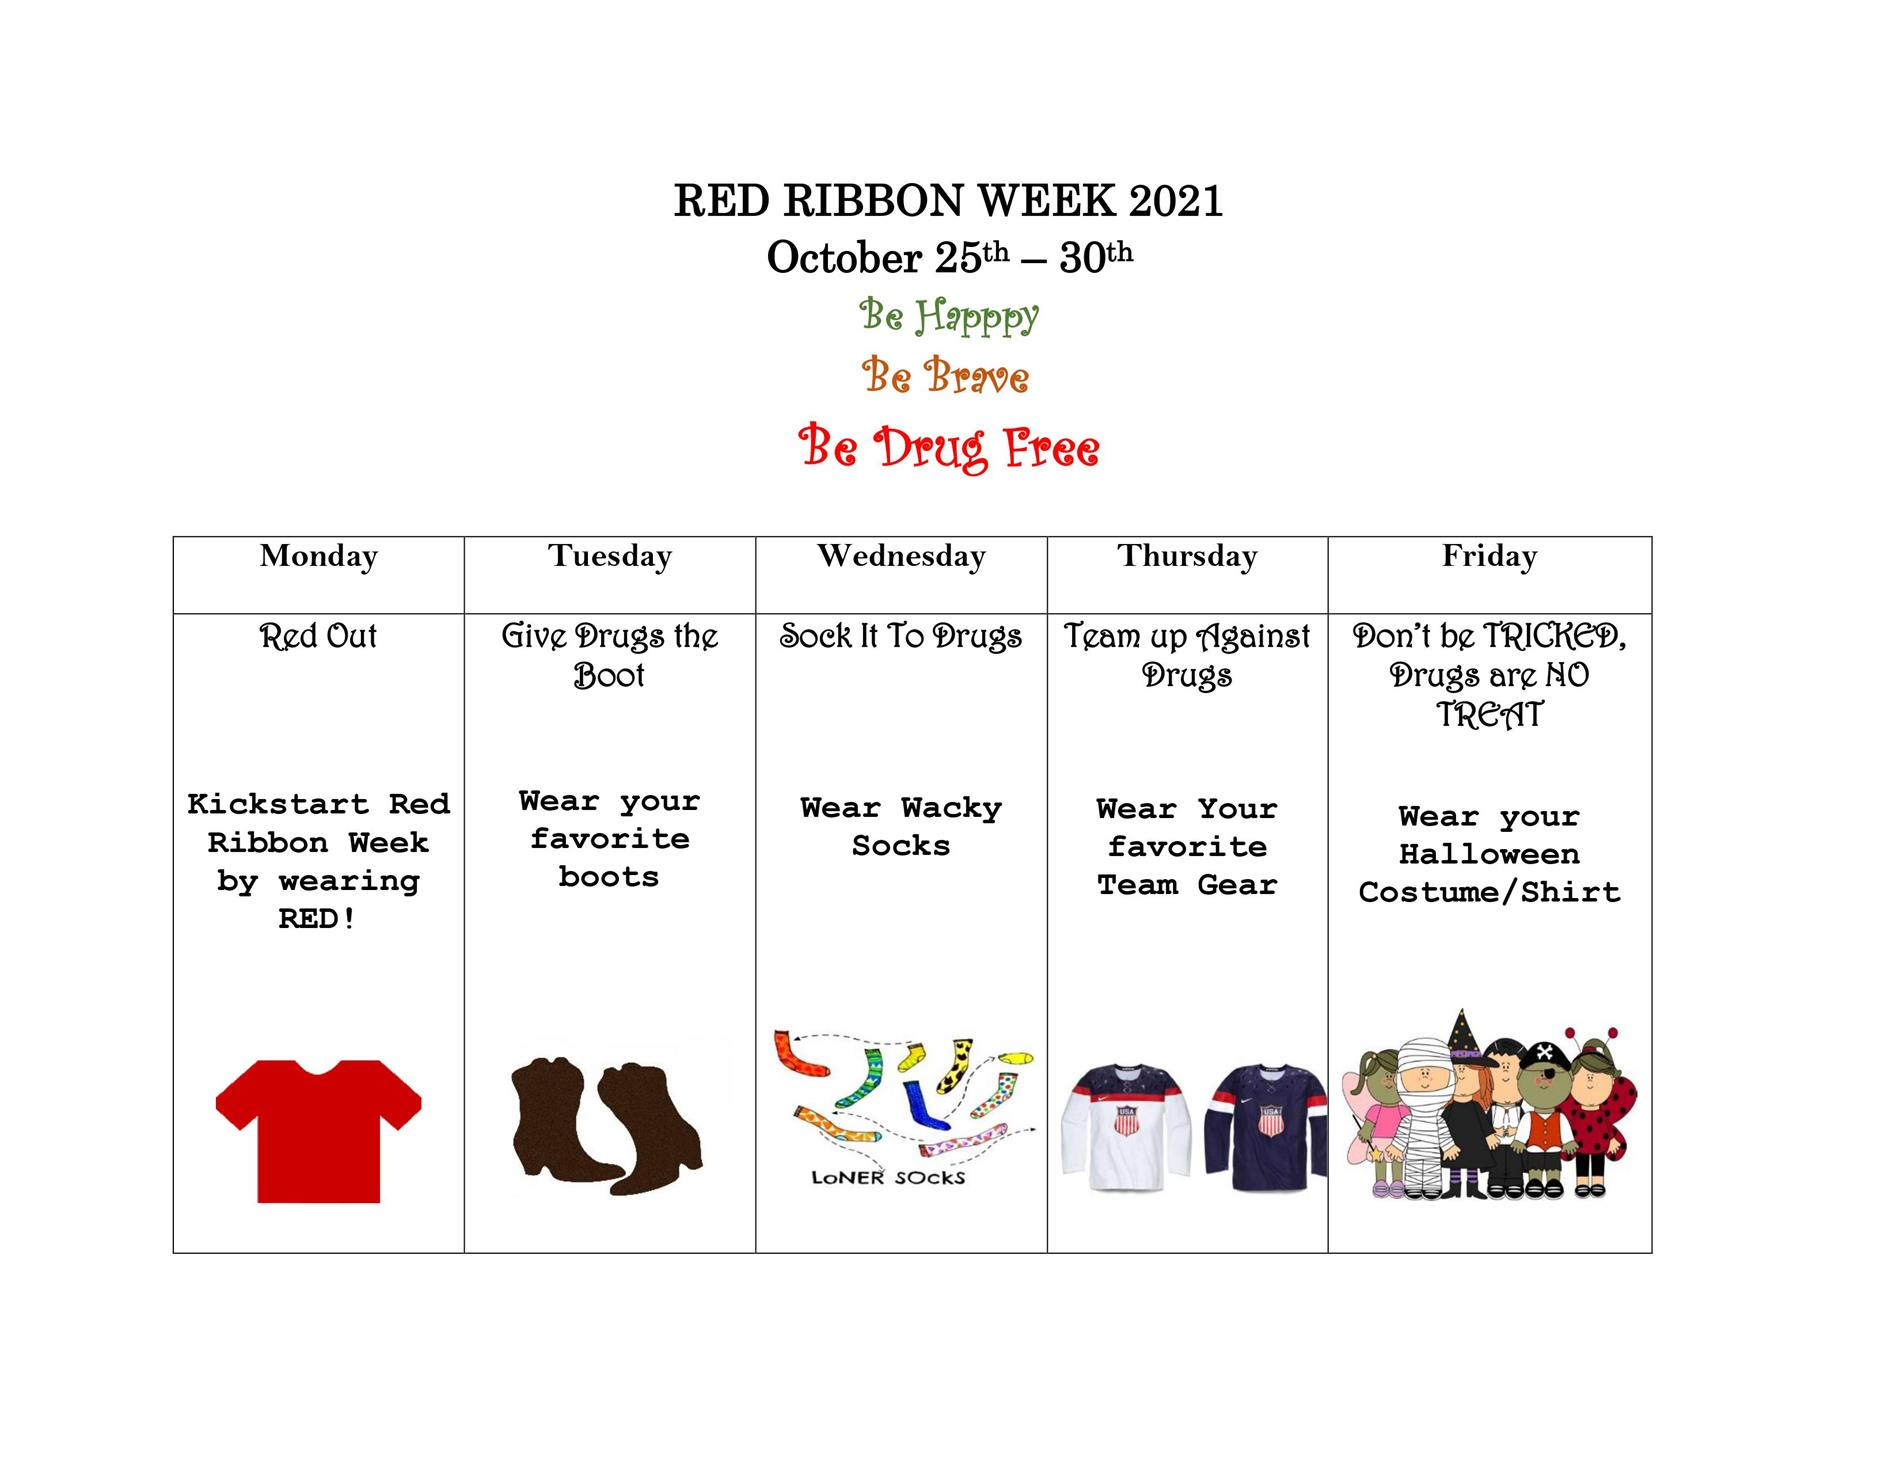 RED RIBBON WEEK 2021  October 25th – 30th  Be Happy  Be Brave  Be Drug FreeMONDAY  Red Out  Kickstart Red  Ribbon Week  by wearing  RED! TUESDAY Give Drugs the Boot Wear your favorite boots WEDNESDAY Sock It To Drugs Wear Wacky Socks THURSDAY Team up Against Drugs Wear Your favorite Team Gear FRIDAY Don't be TRICKED, Drugs are NO TREAT Wear your Halloween Costume/Shir